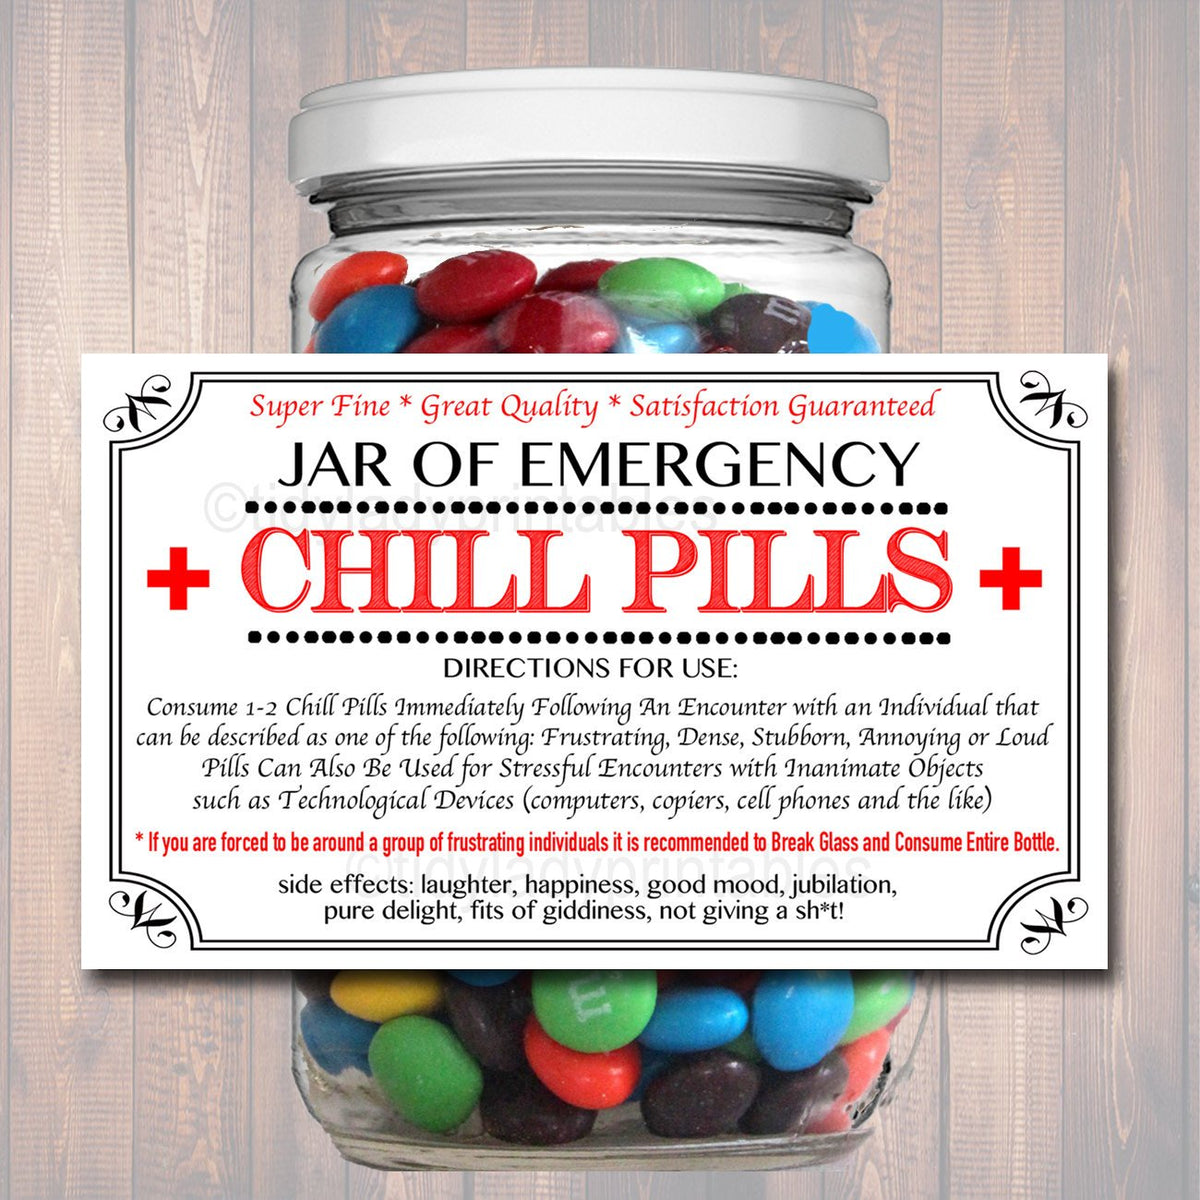 photo regarding Chill Pill Label Printable called Chill Supplements Label, Humorous Nurse Gag Present Knowledgeable Office environment Xmas Reward, Birthday Reward, Trainer, Manager Present, Cowork Reward Printable Label